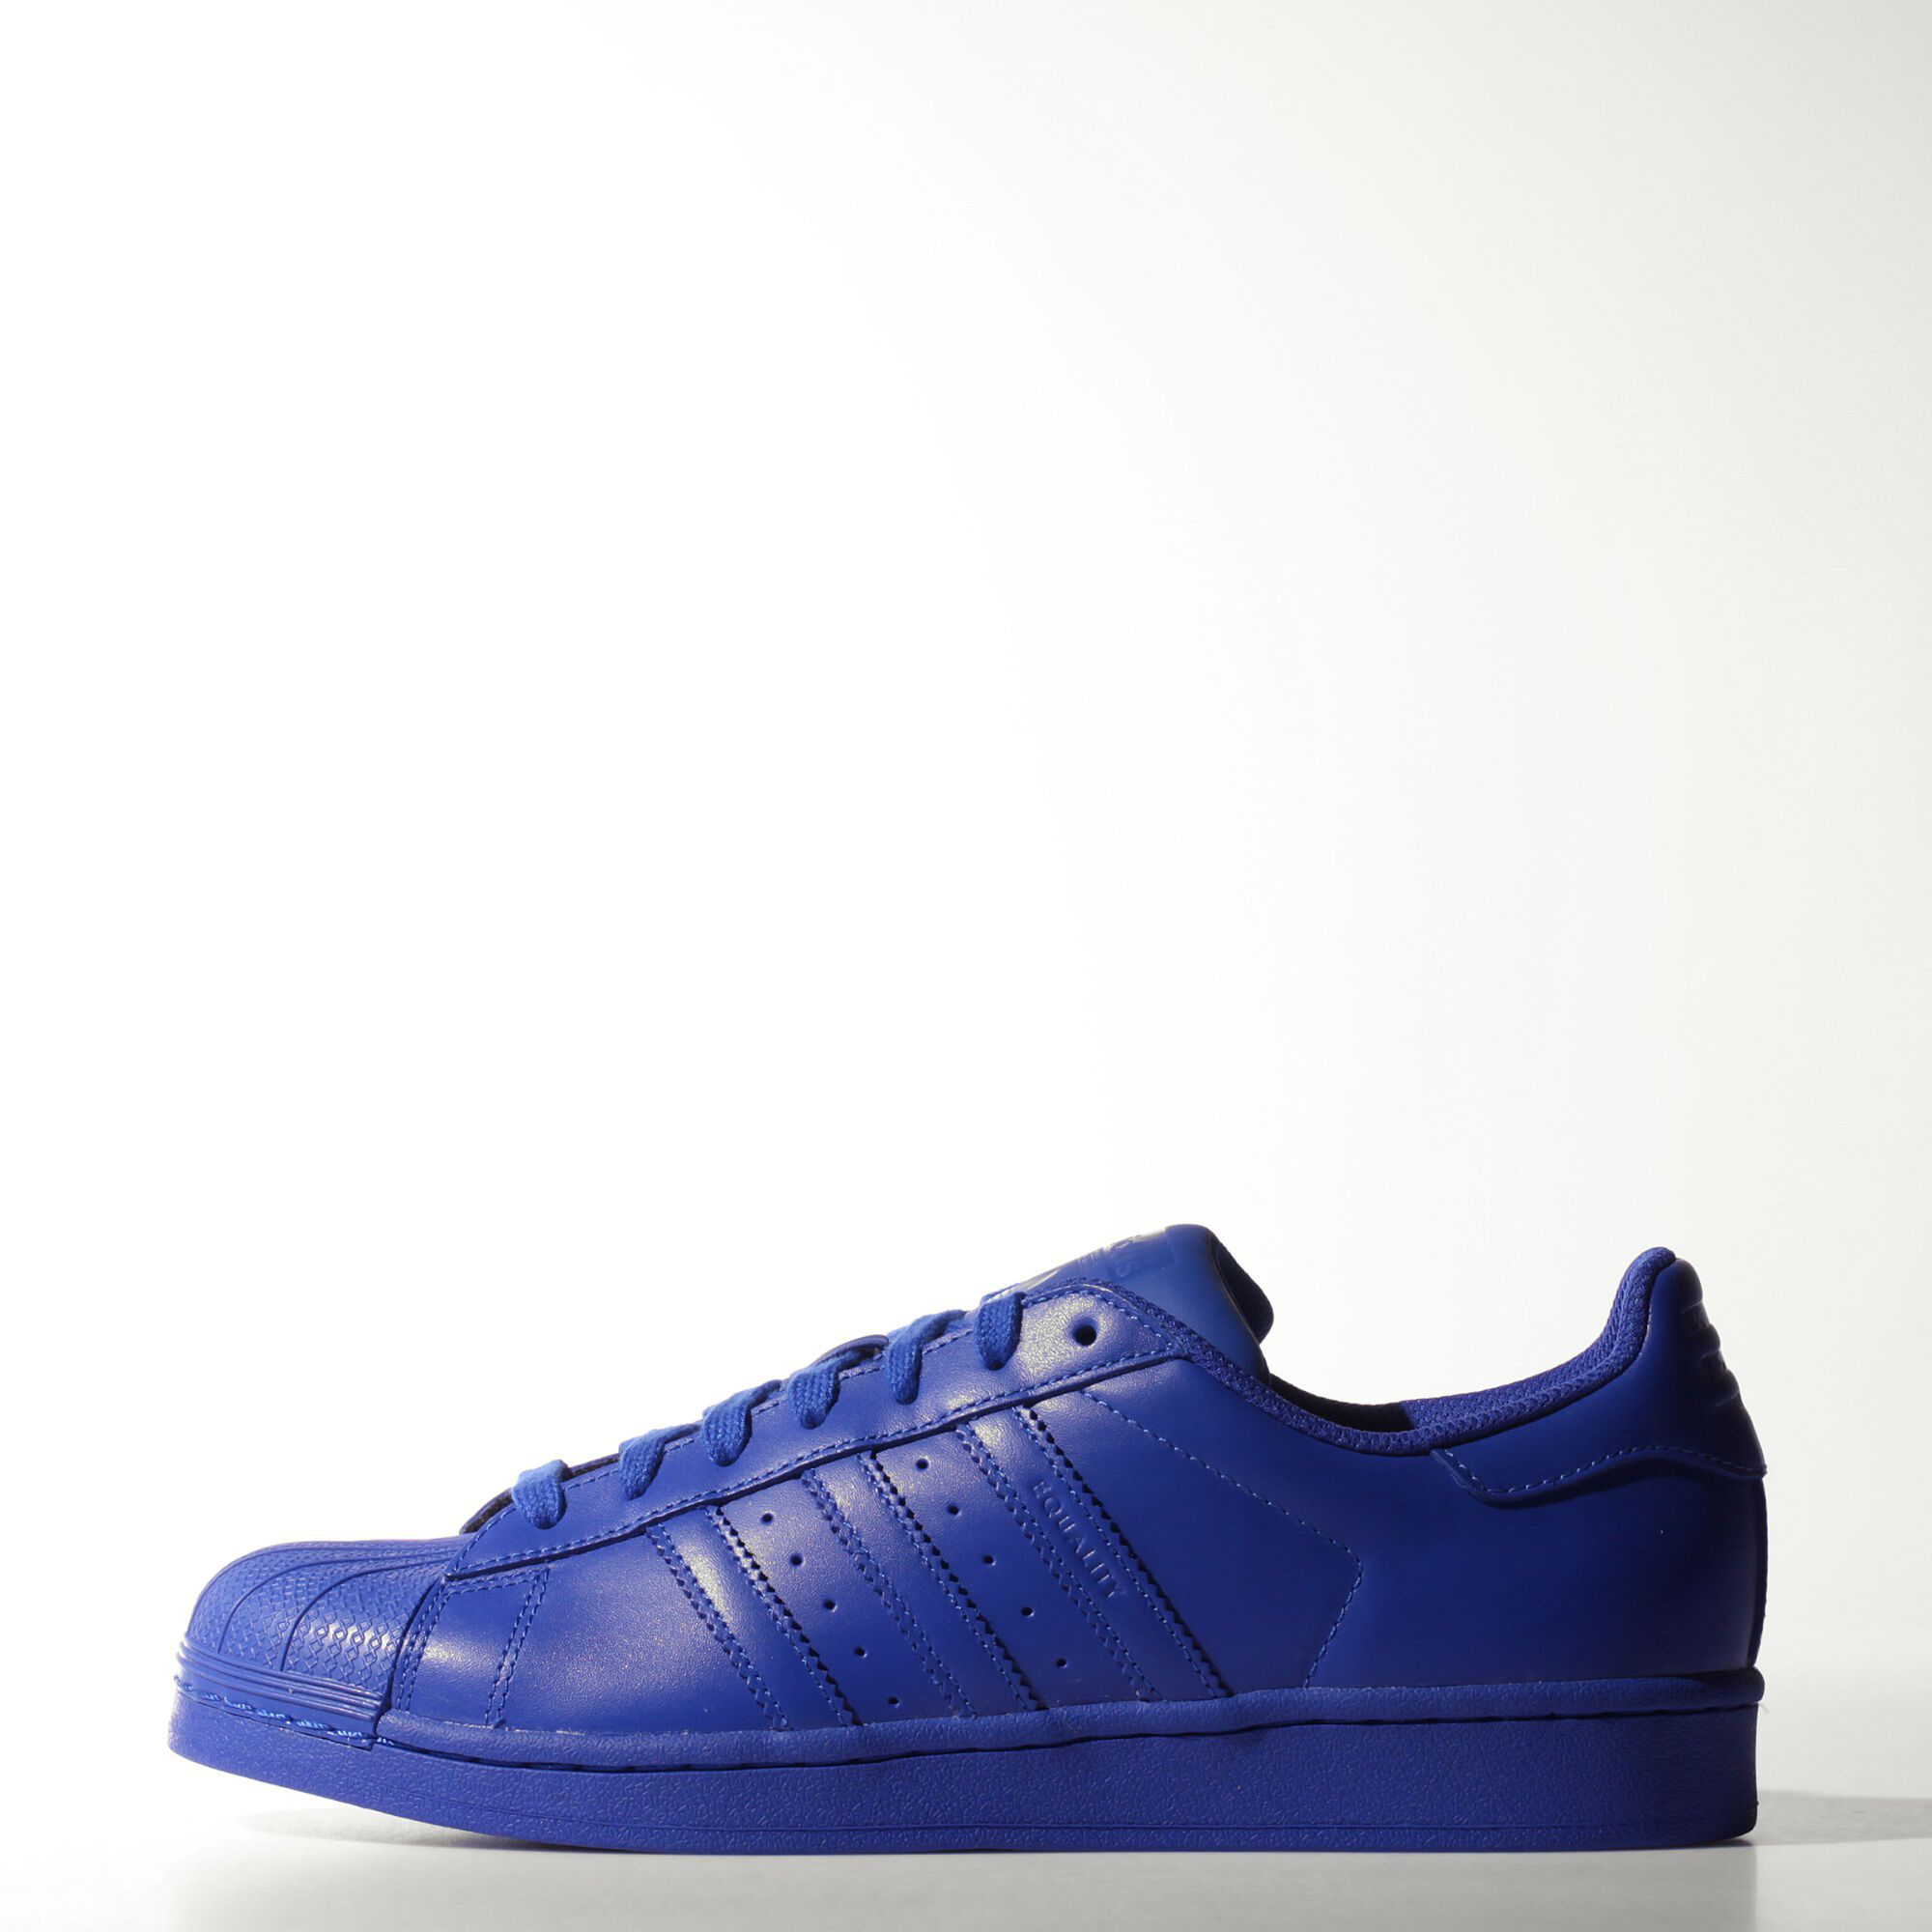 Adidas Superstar Supercolor Blue